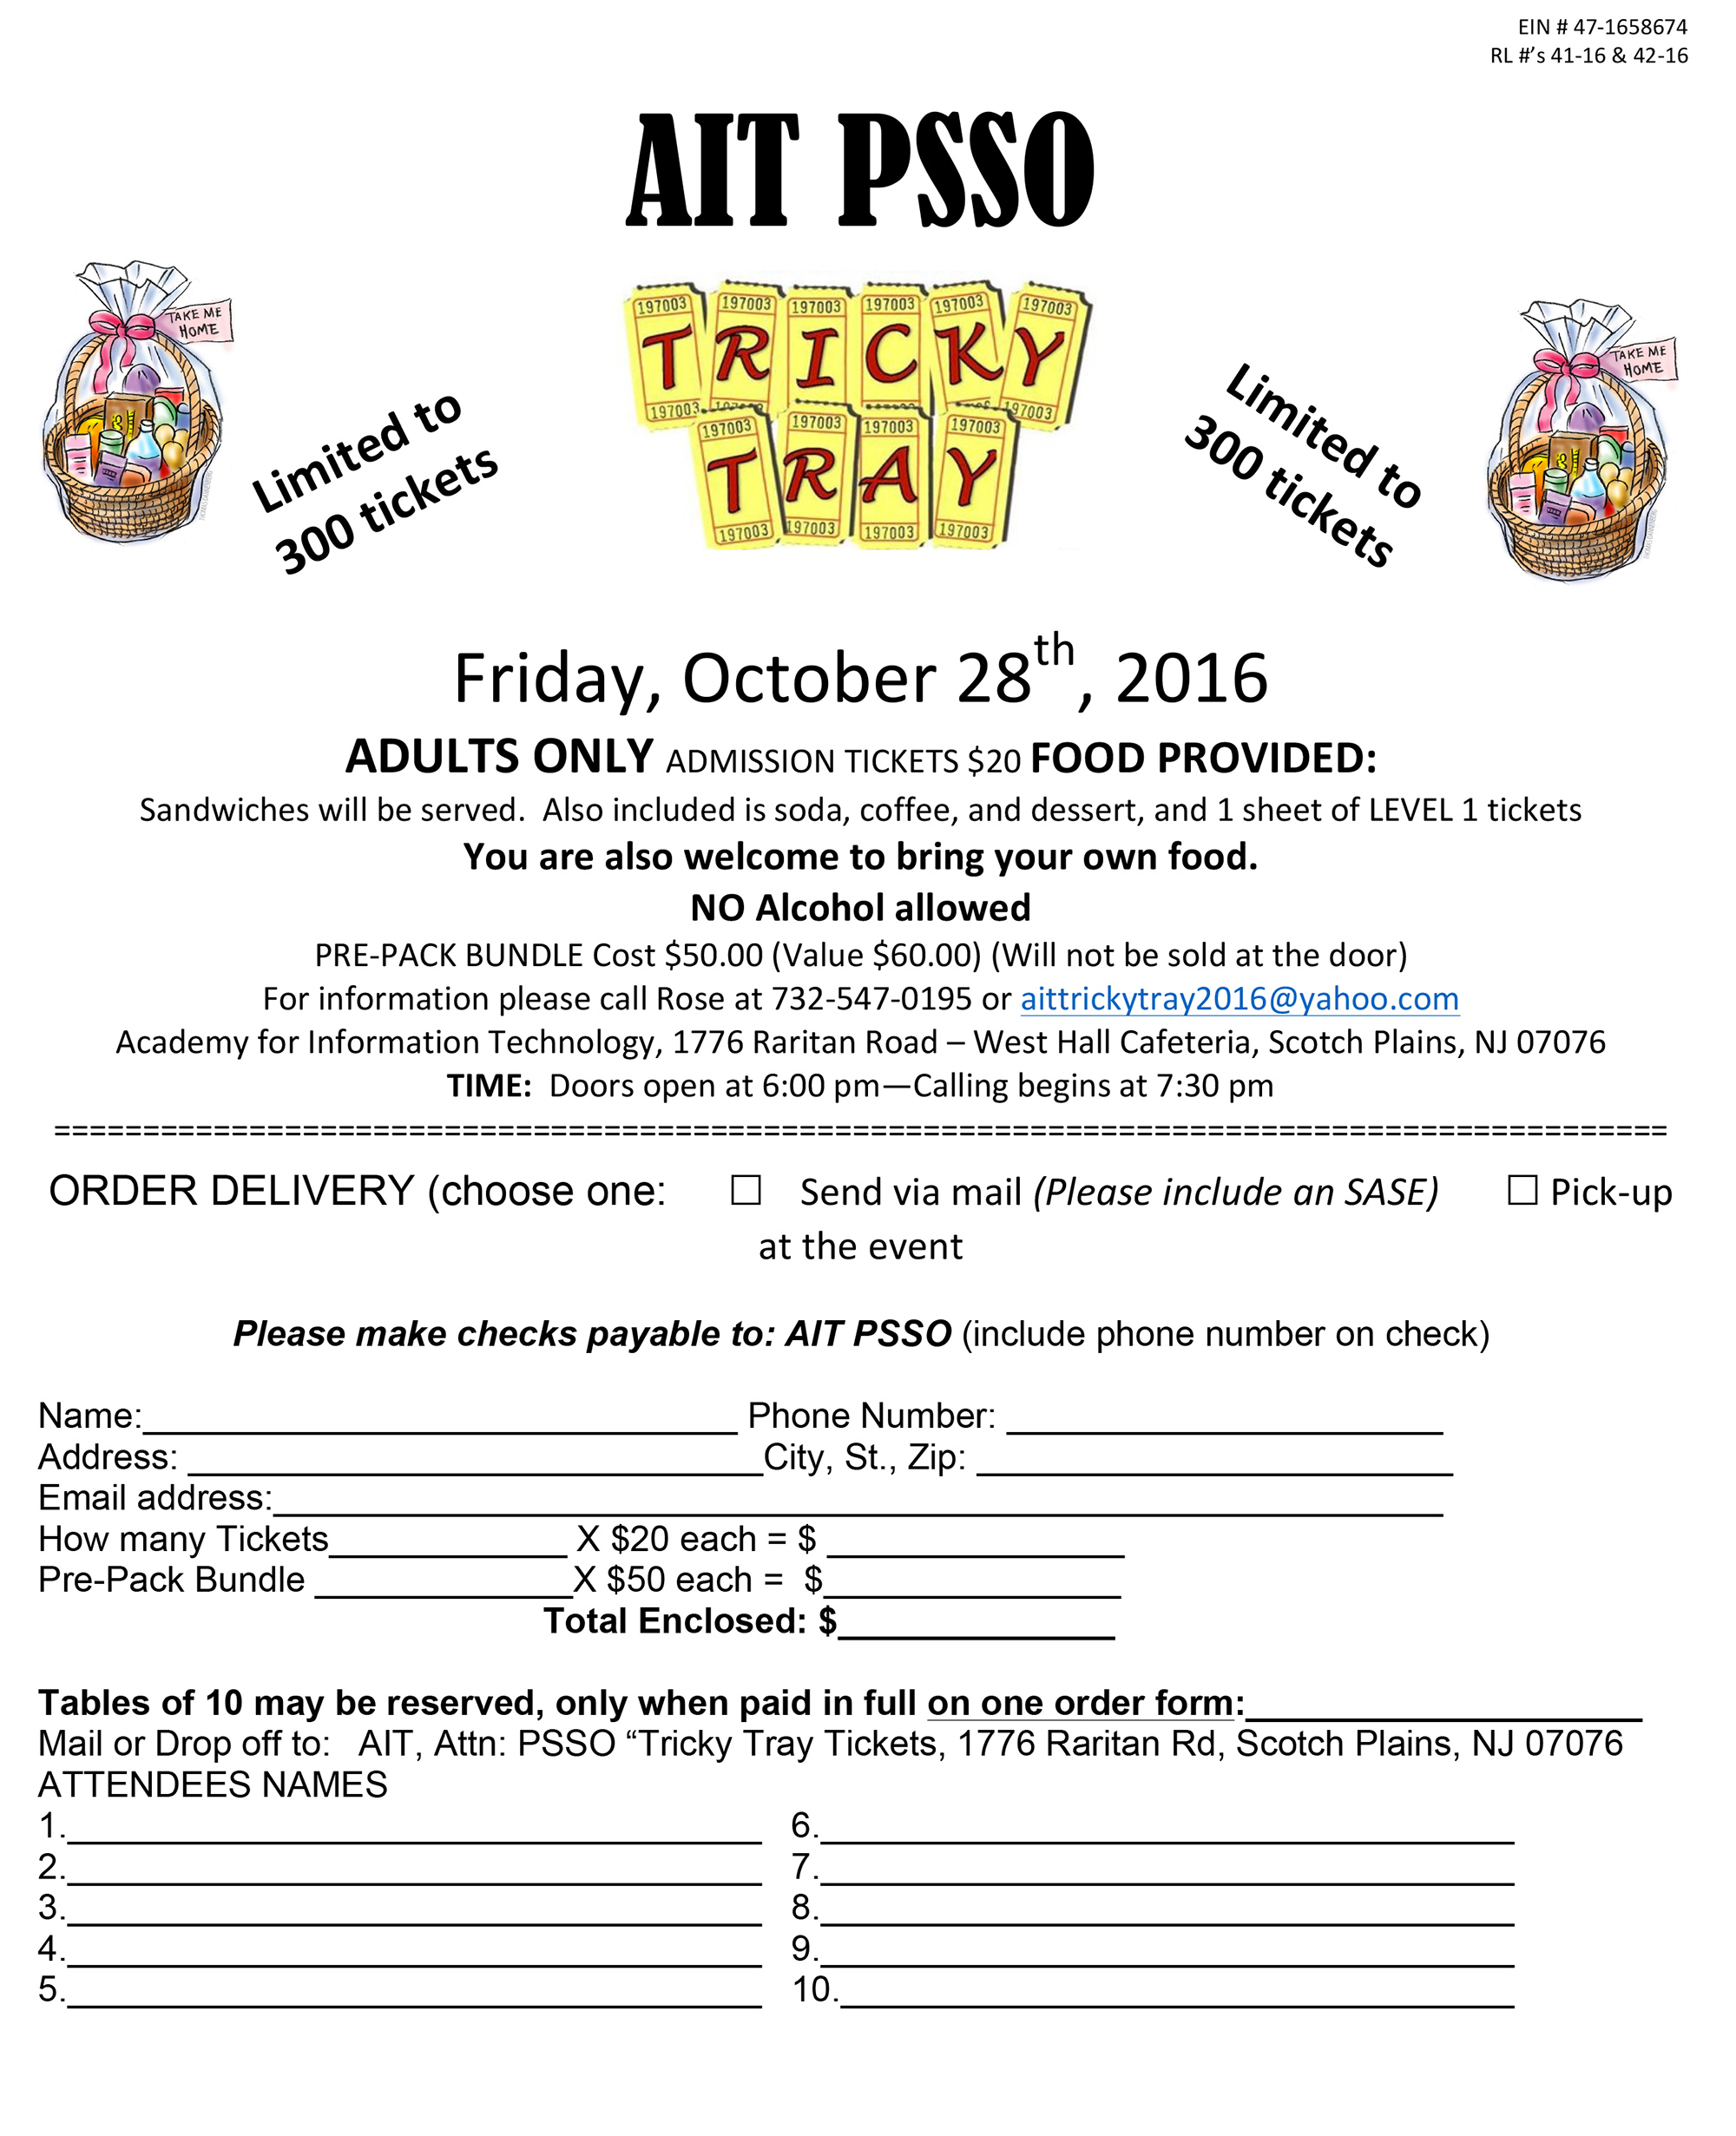 Microsoft Word Tricky Tray Public Order form 092716docx – How to Make an Order Form in Word